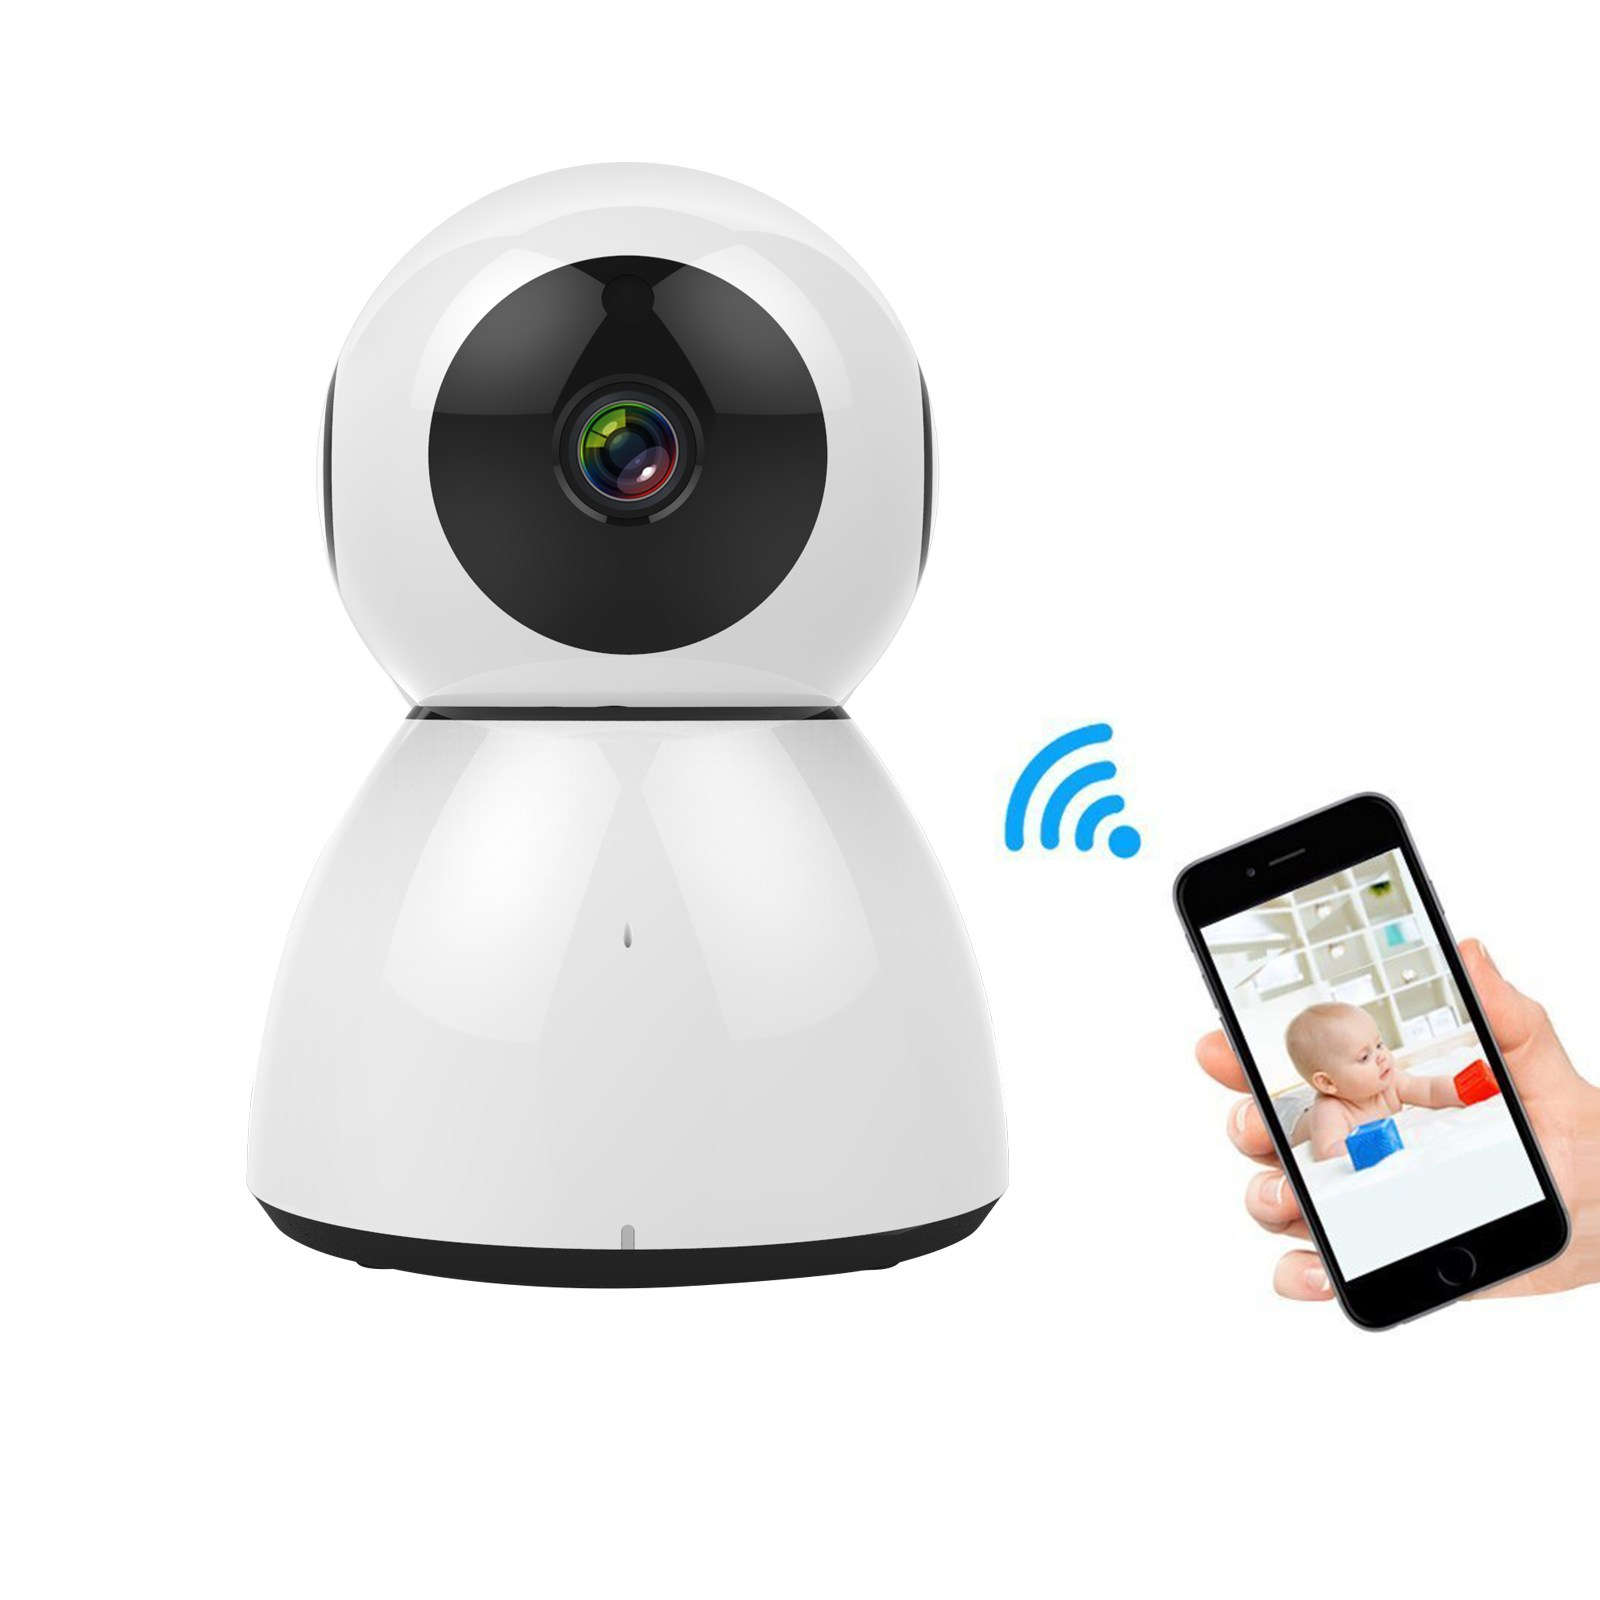 NEW Wireless WiFi Home Security Camera 1080P 3.6mm IP Camera Support Cloud Storage Two-Way Audio Night Vision(China (Mainland))